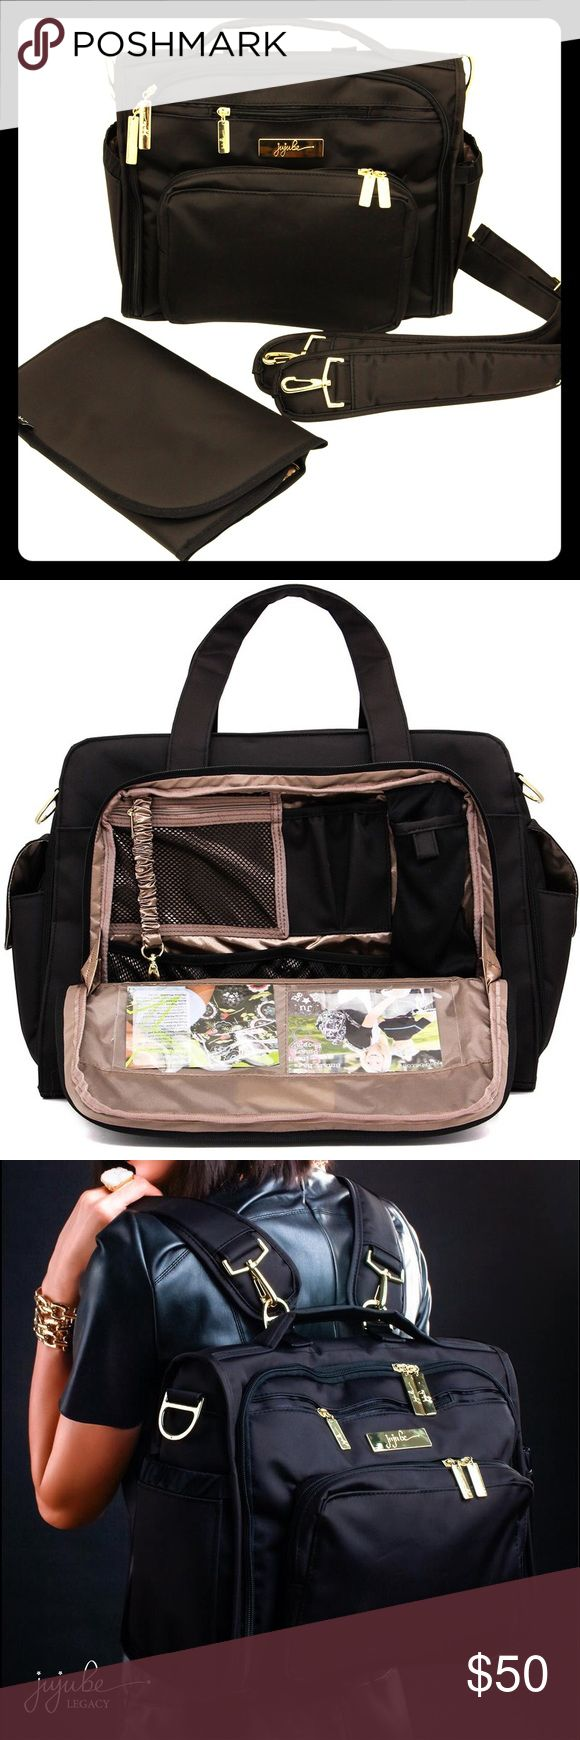 """Jujube diaper baby bag """"the monarch"""" I bought this diaper bag from Nordstrom less than a year ago and it's amazing -- lots of pockets inside and out, and a perfectly sized outside """"mom's pocket"""" that fits wallet, keys, sunglasses, lip gloss, pens, etc. Comes with a changing pad. Best feature is that it can be worn as a shoulder bag or backpack which is perfect for travel. If you're not familiar with this bag, check out more details online or the reviews on YouTube! This bag is used but still…"""